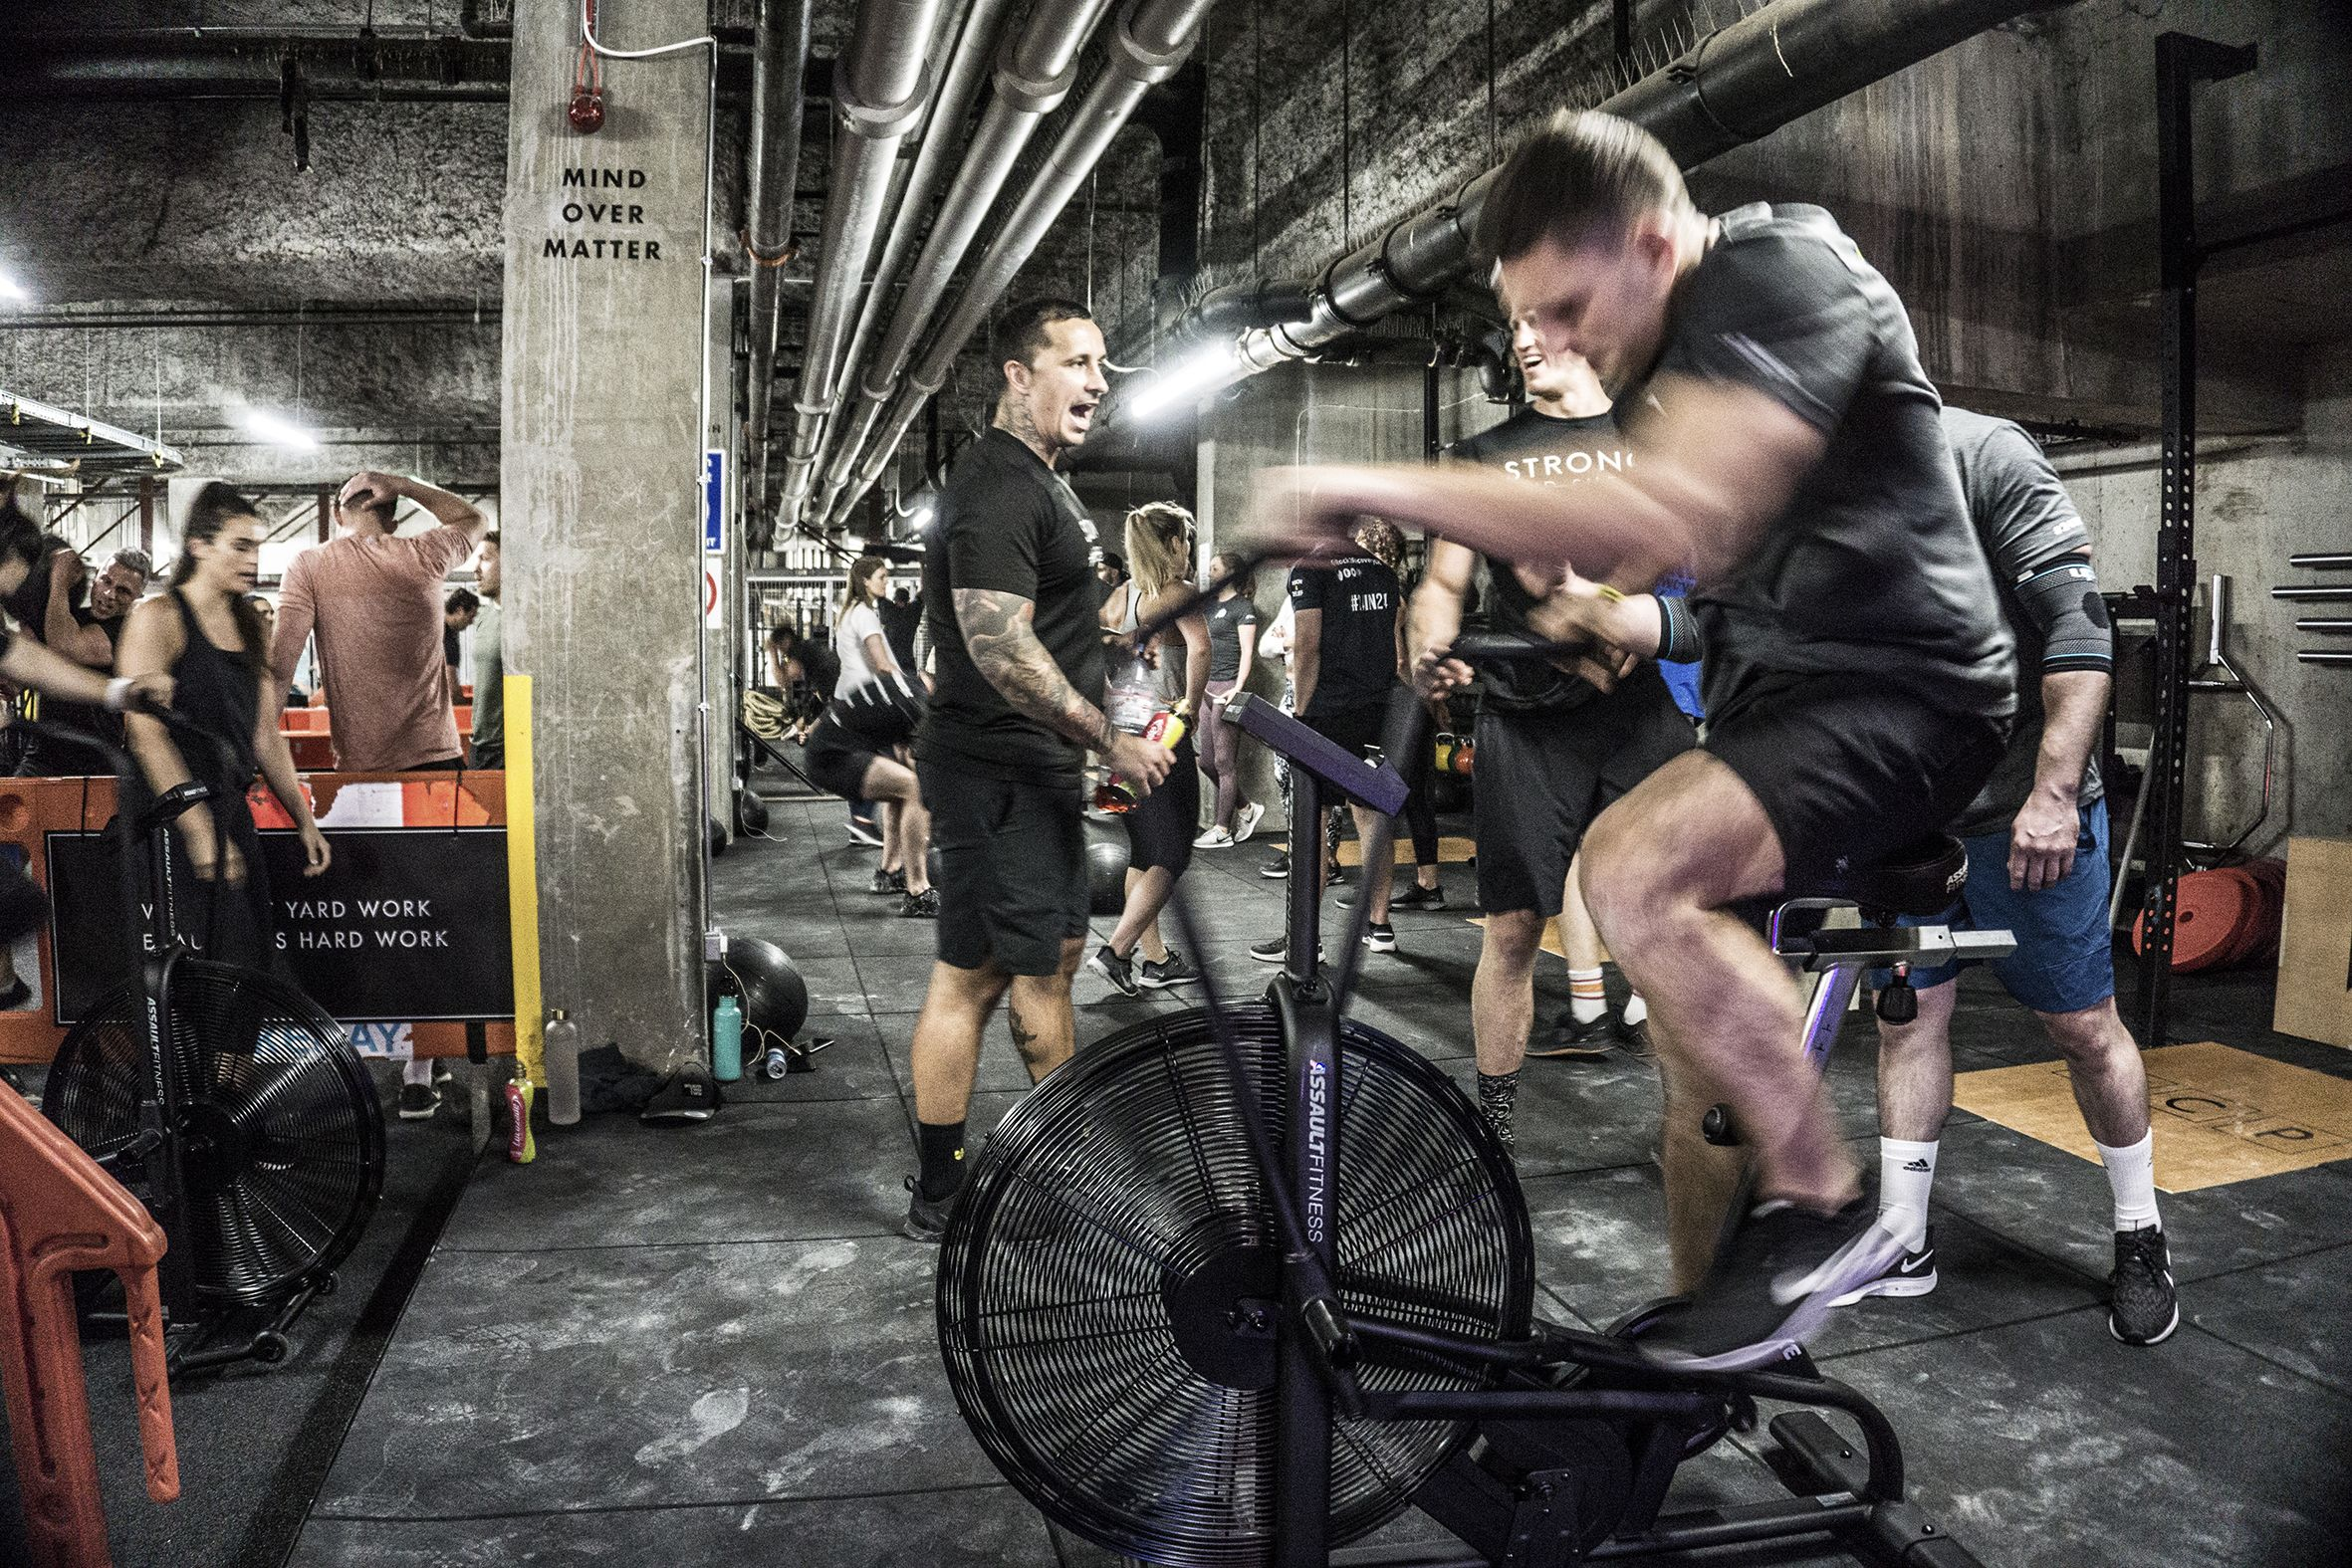 The Gym That's Strengthening Minds Over Bodies